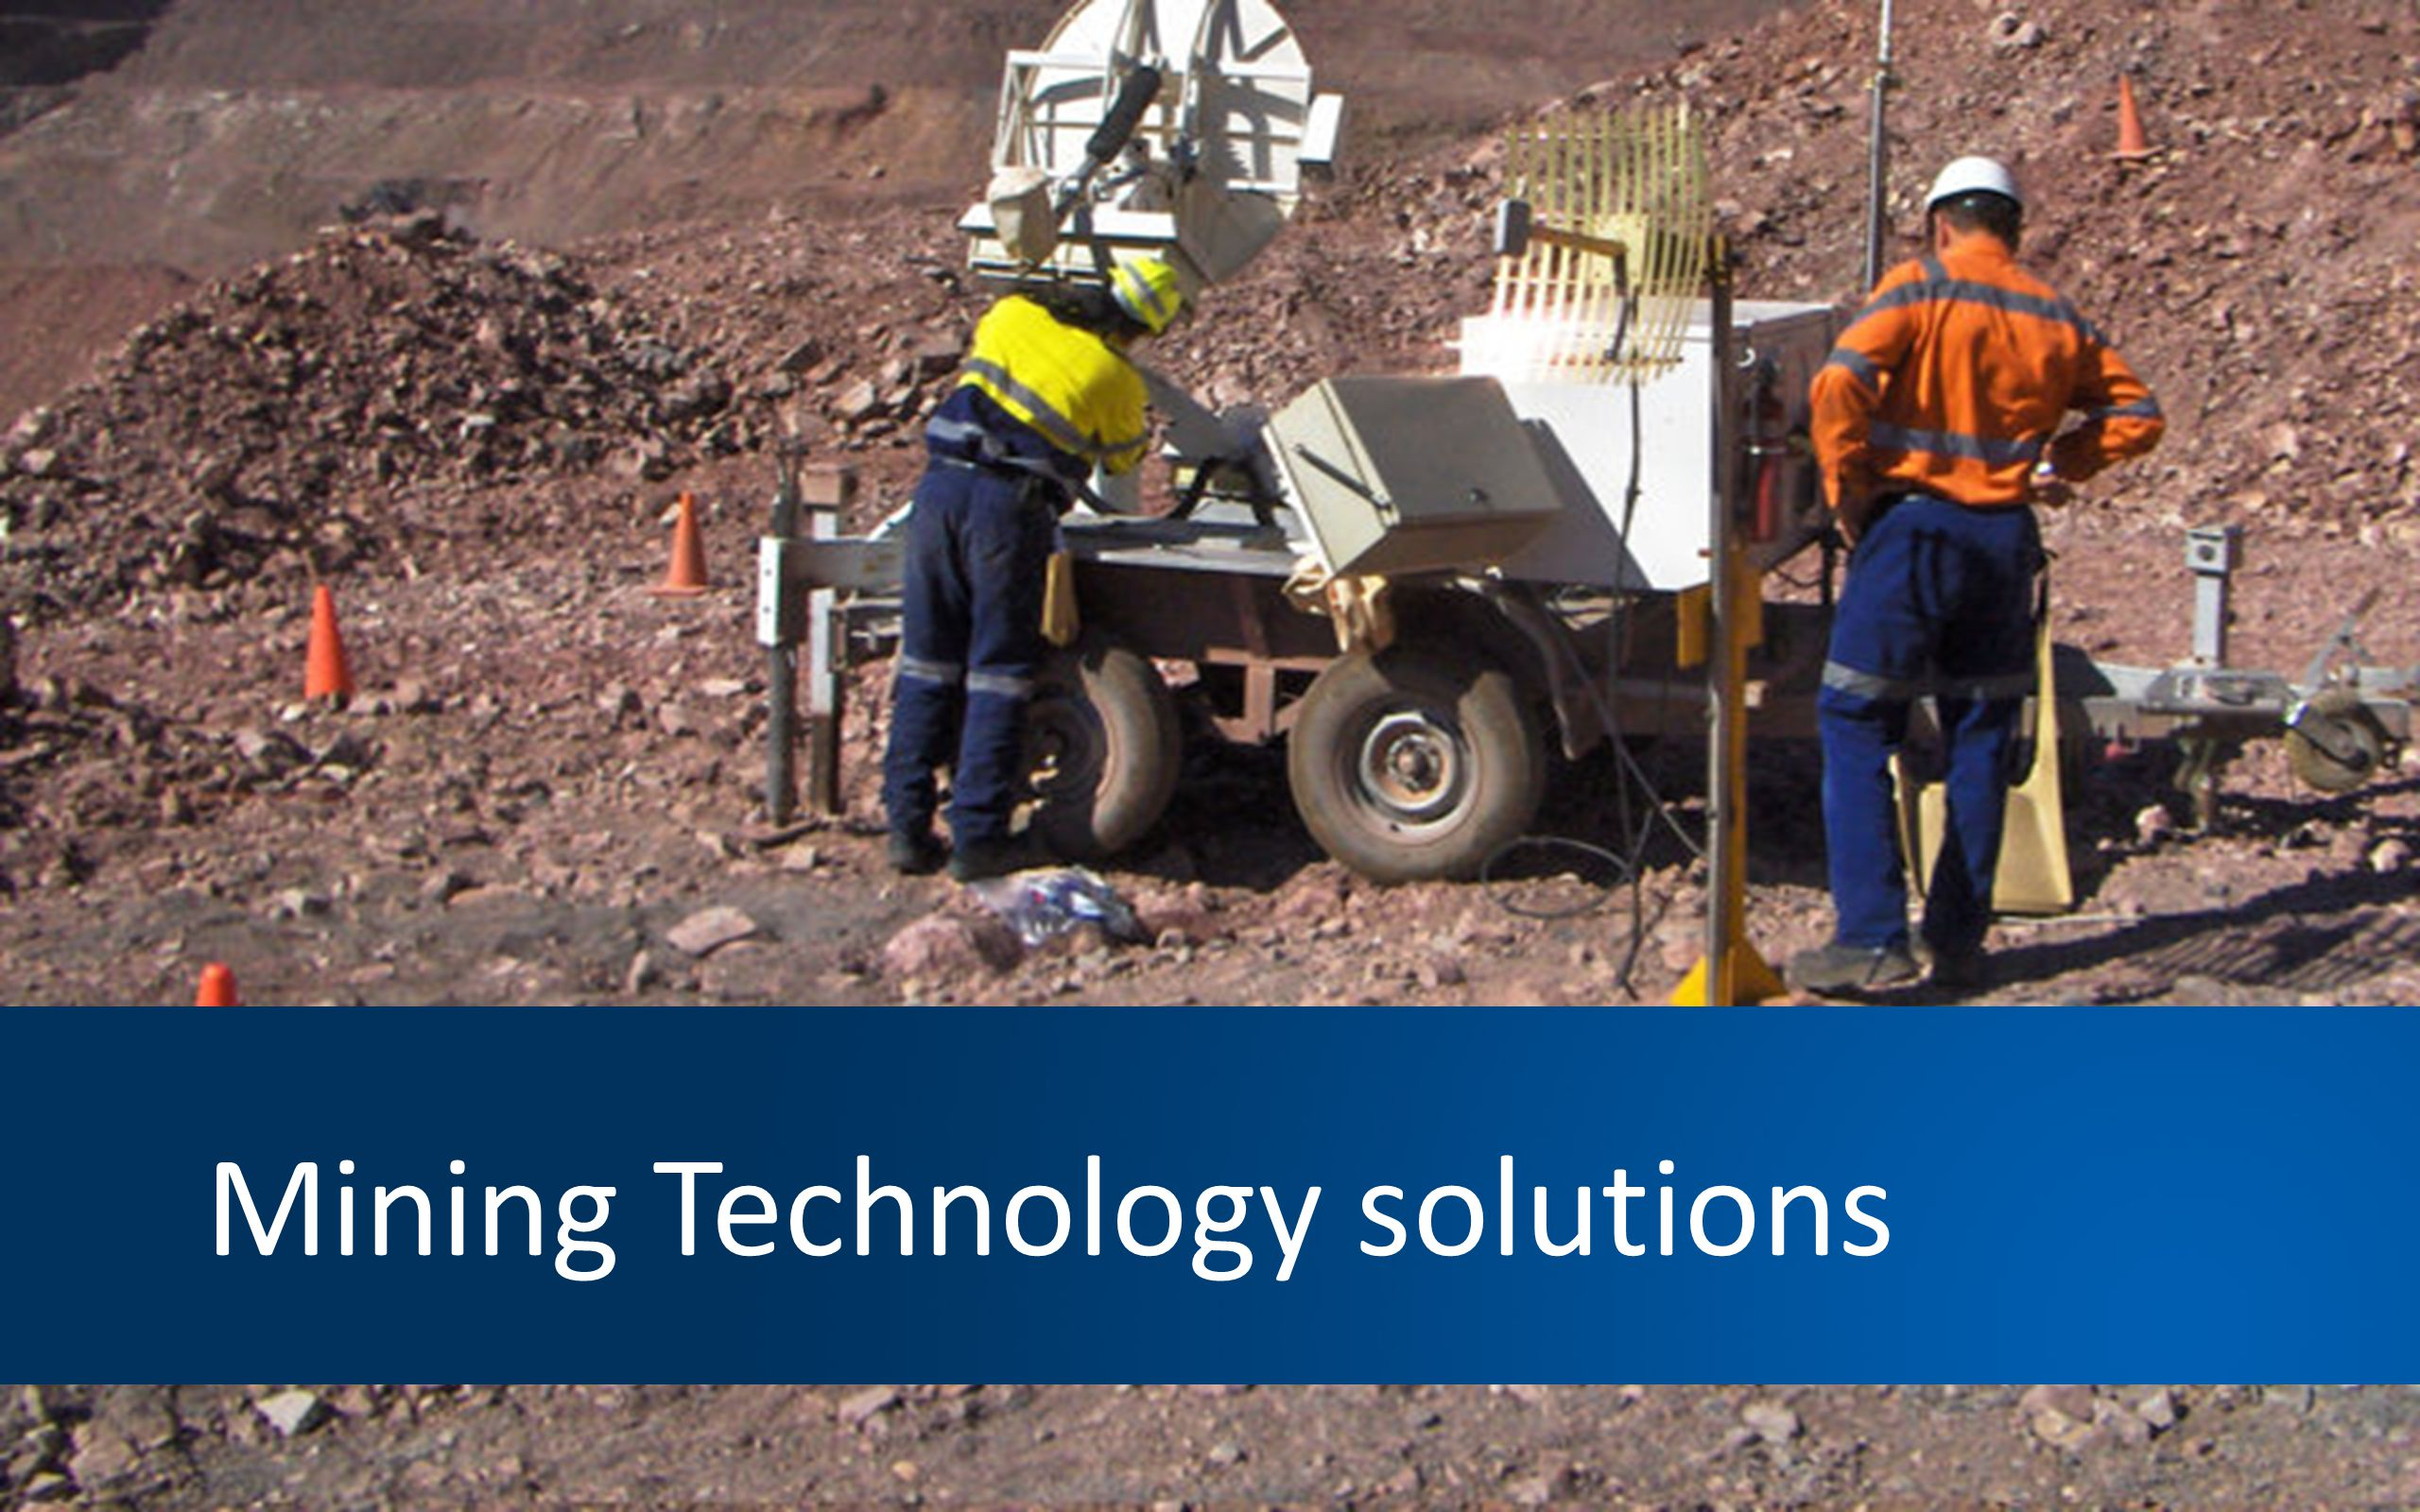 Mining Technology solutions